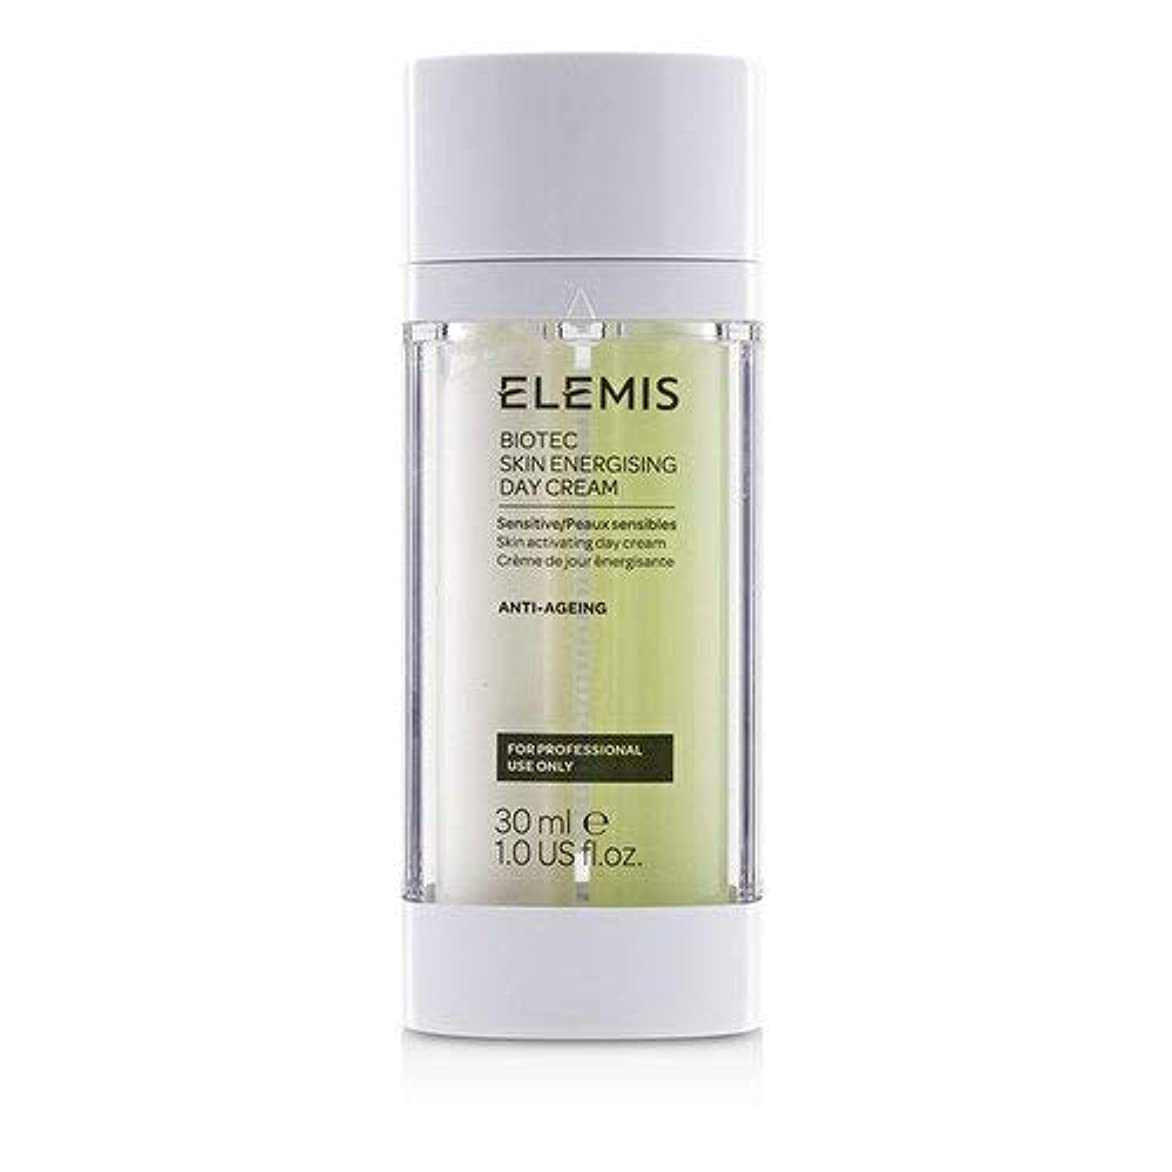 届ける明らかに偉業エレミス BIOTEC Skin Energising Day Cream - Sensitive (Salon Product) 30ml/1oz並行輸入品